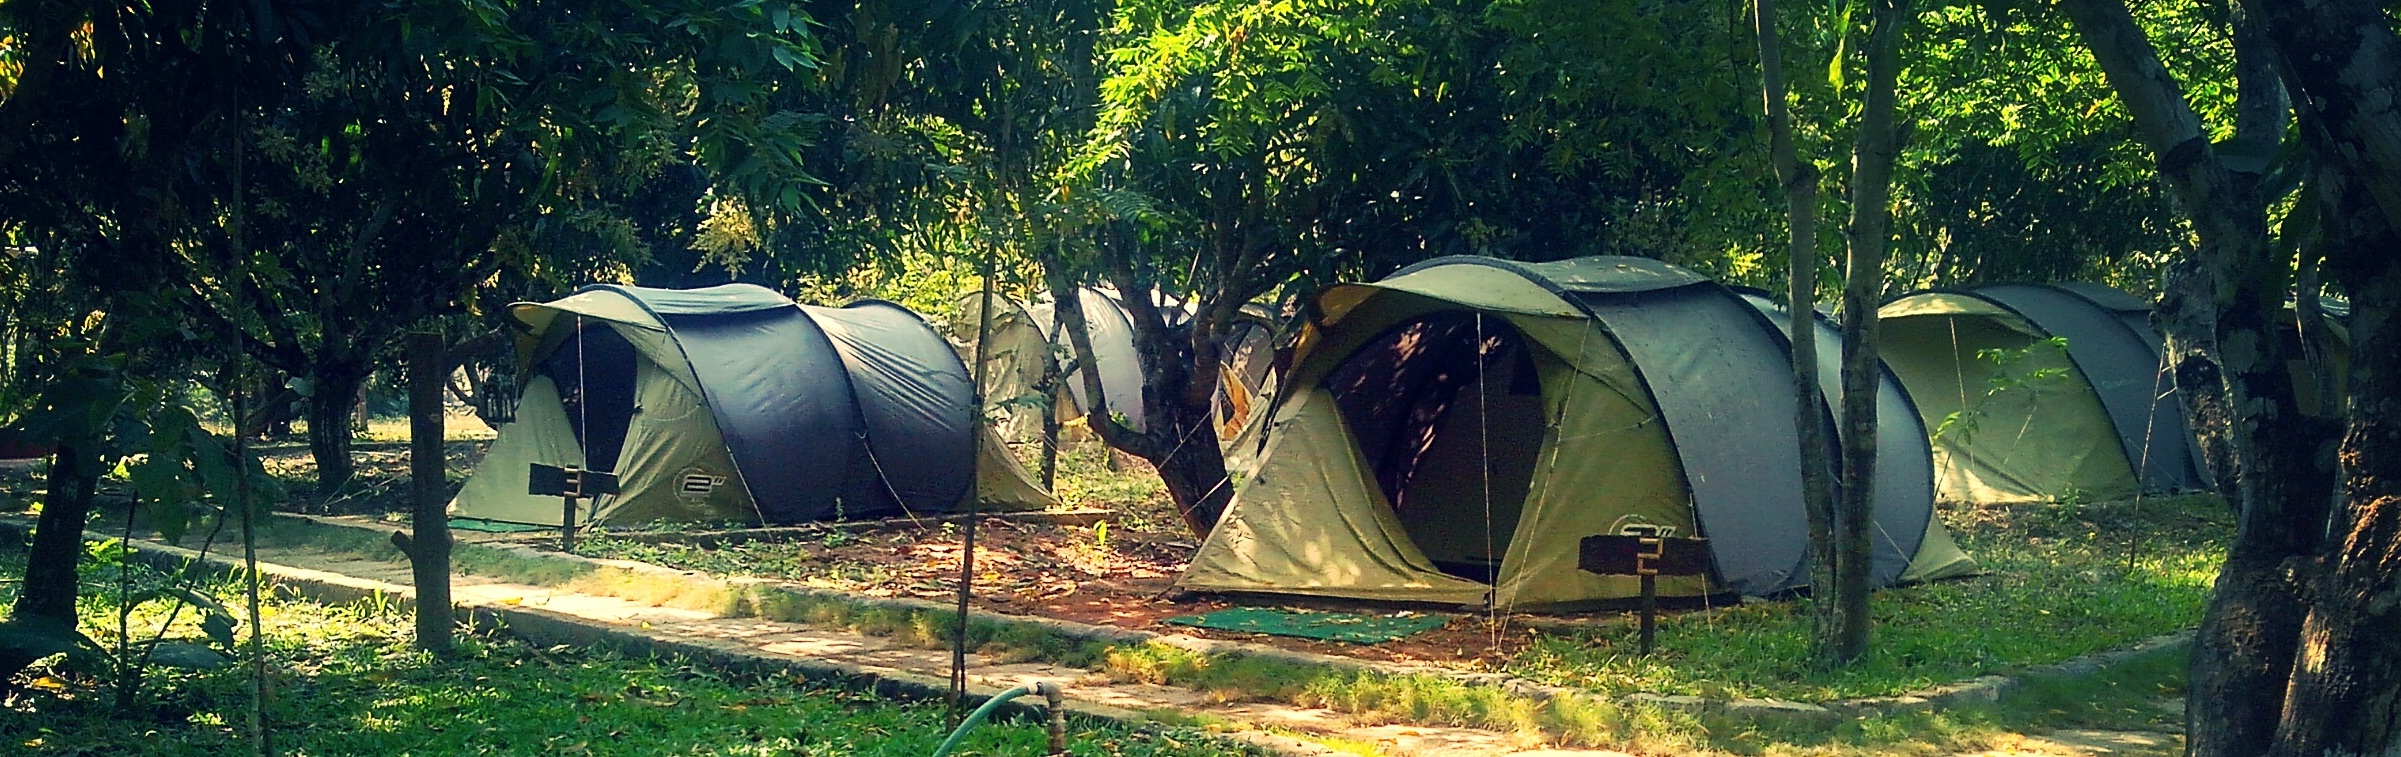 adventure pitch t resorts near Dandeli